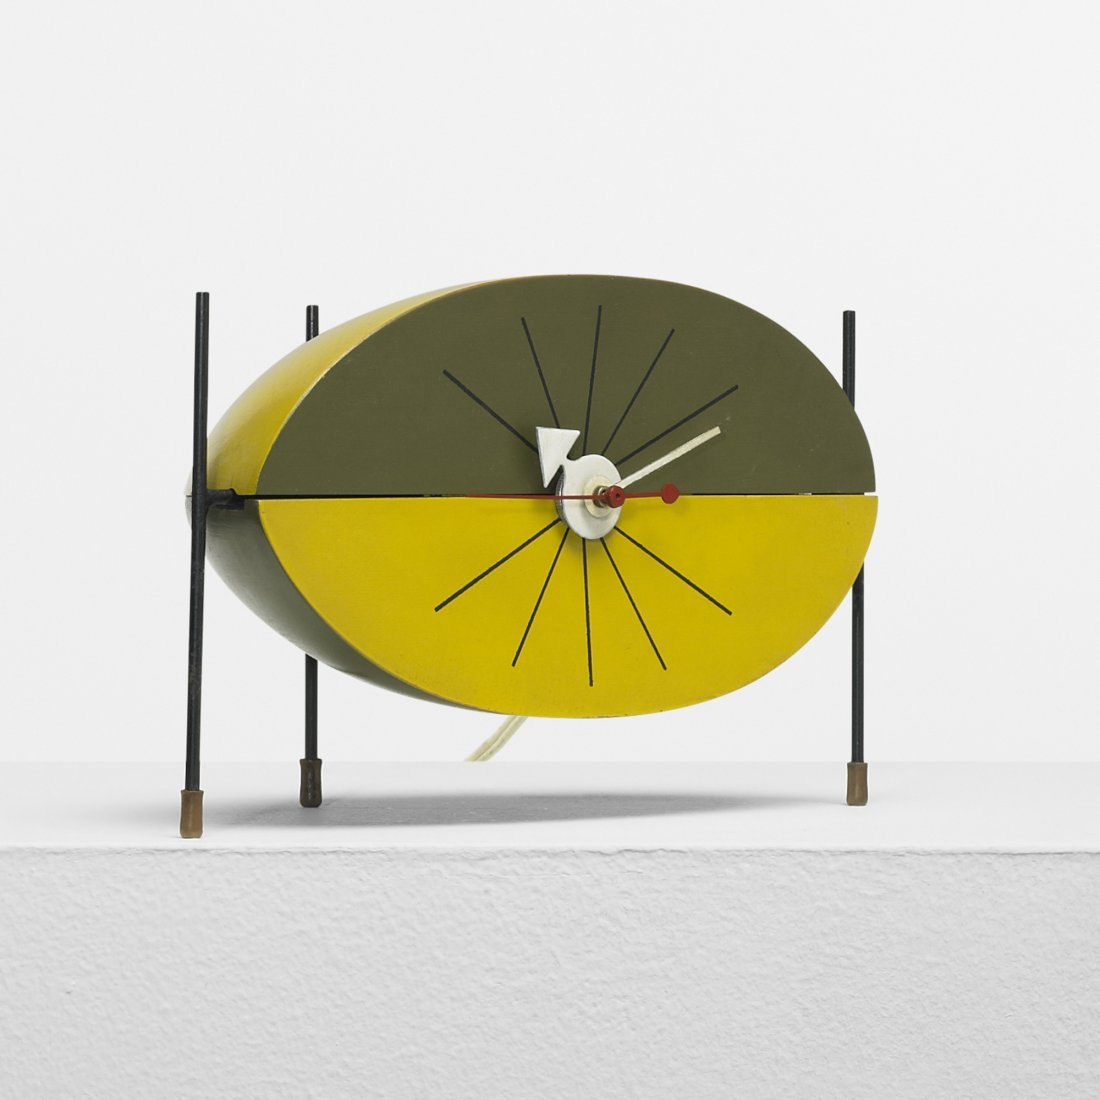 201: George Nelson & Associates Watermelon table clock